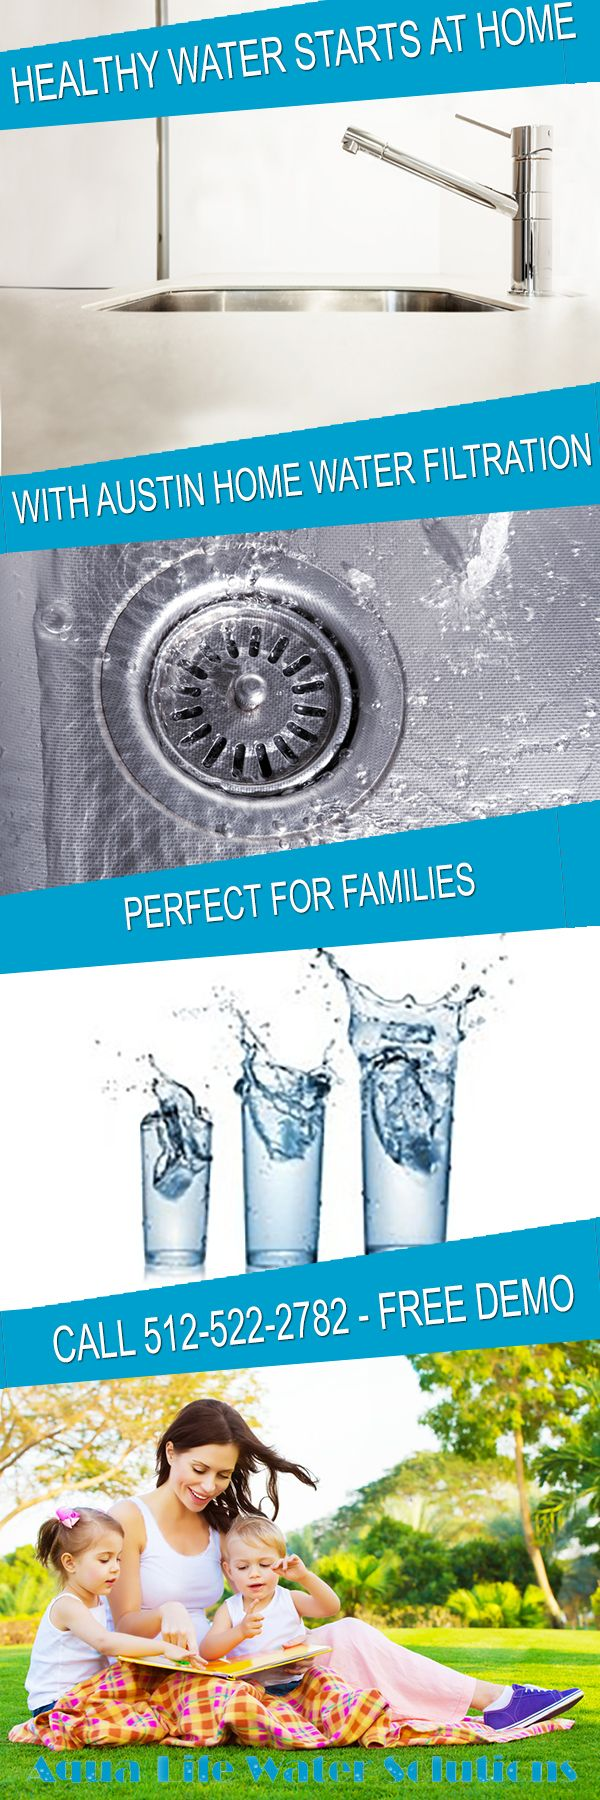 Healthy water starts at home. Our home water filtration company installs water filtration systems in Austin, Texas that remove contaminants from your tap water, making it safe for everyone in your family to drink. Call for your FREE water test - demo only takes 20 minutes: 512-522-2782 www.aqualifetx.com